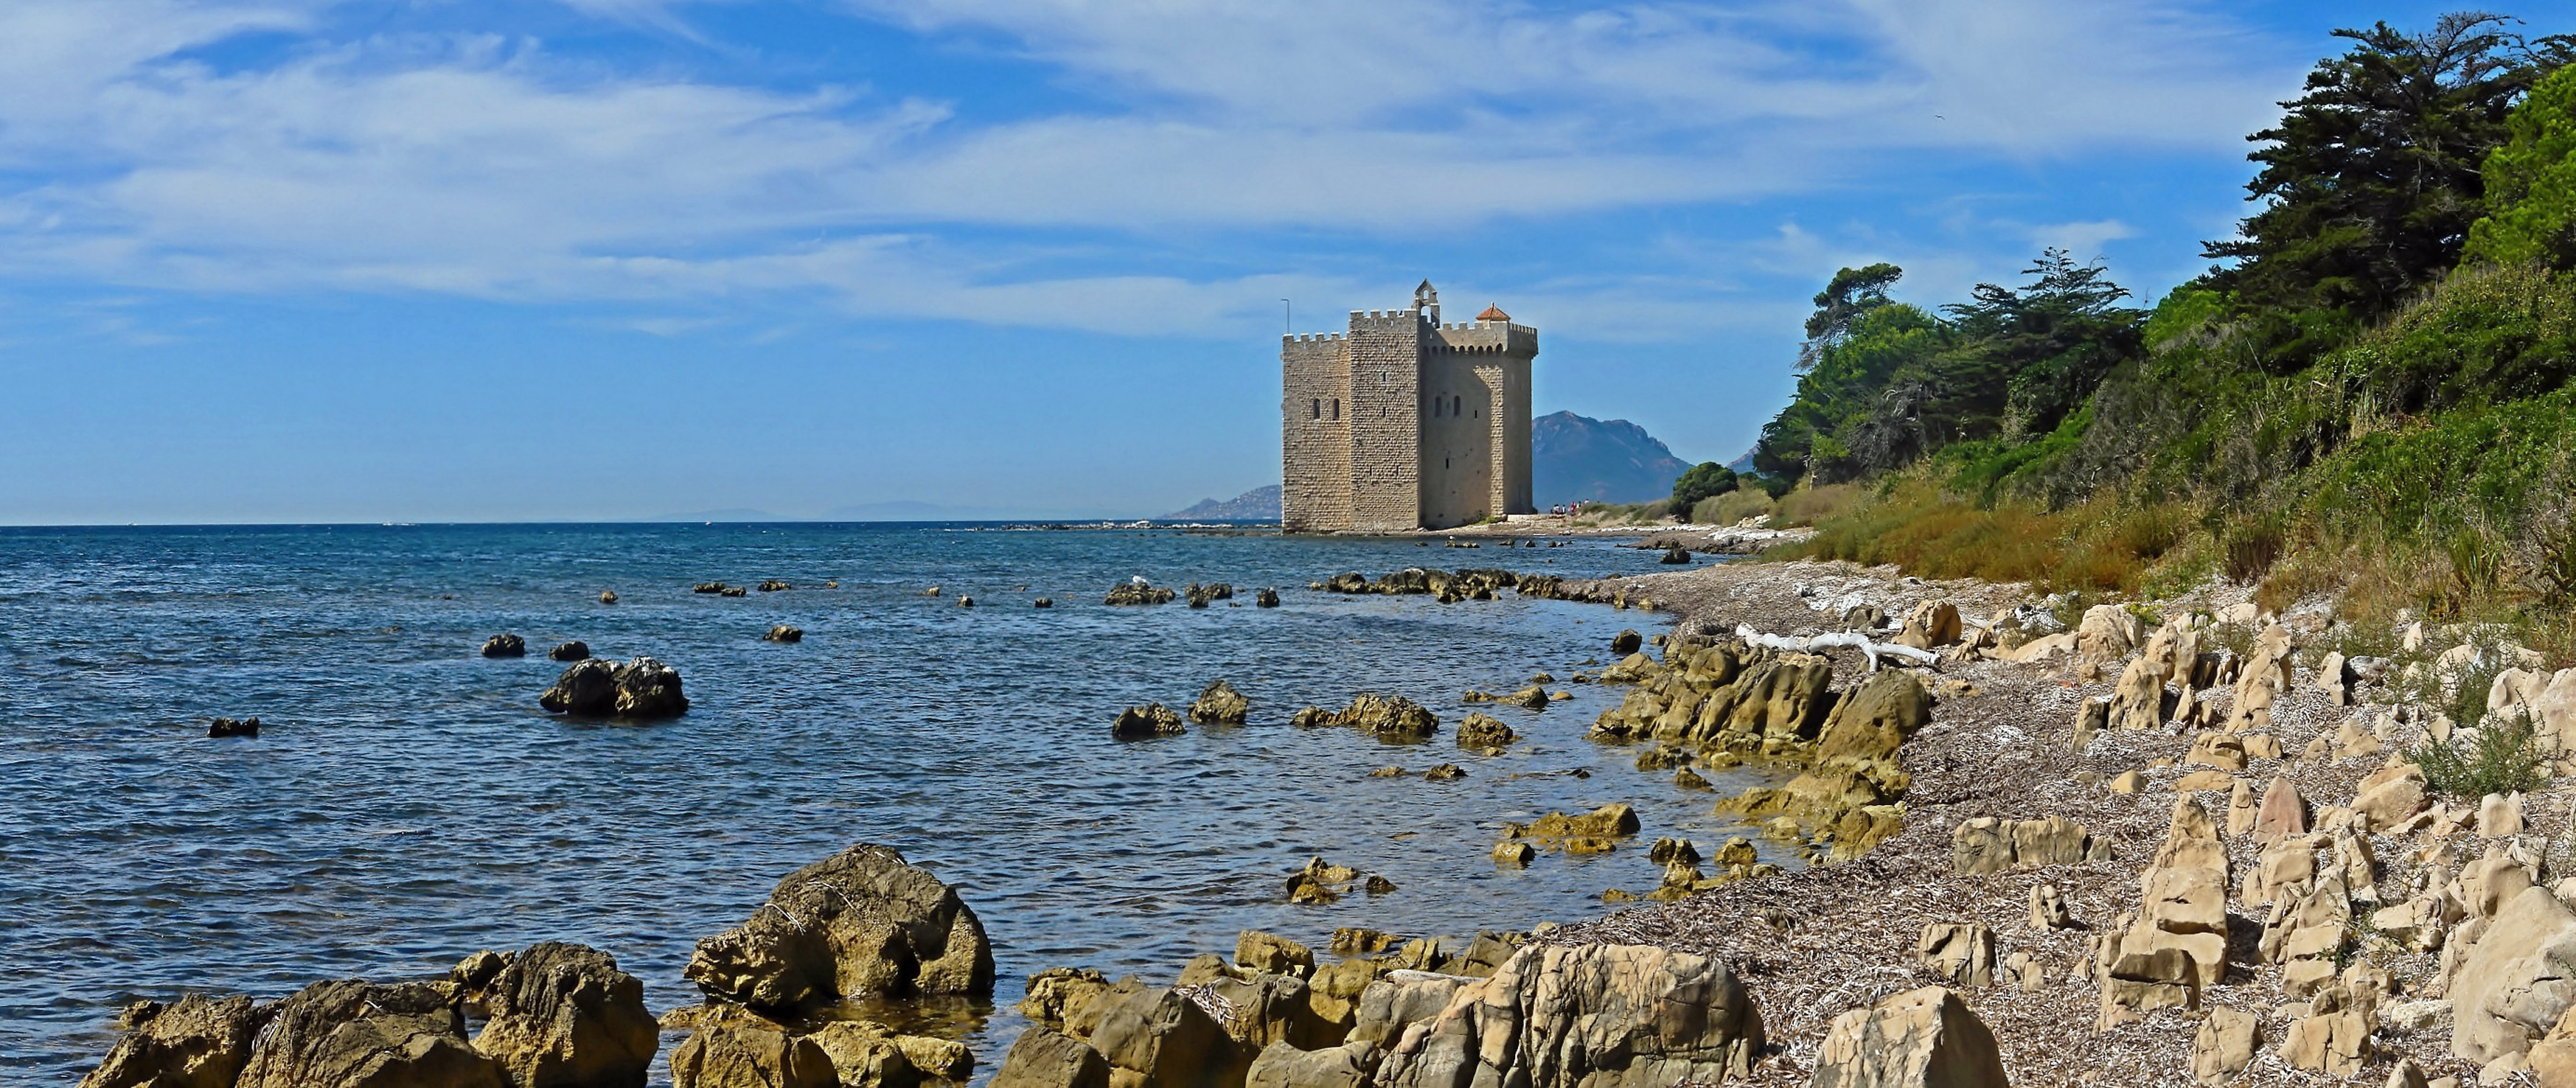 Old fortified monastery of the Lérins Abbey, on the island of Saint-Honorat, one of the Lérins Islands, next to Cannes.  Building started in 1073 to protect the monks from the attacks of Saracen pirates. The picture was obtained after stiching 3 pictures.